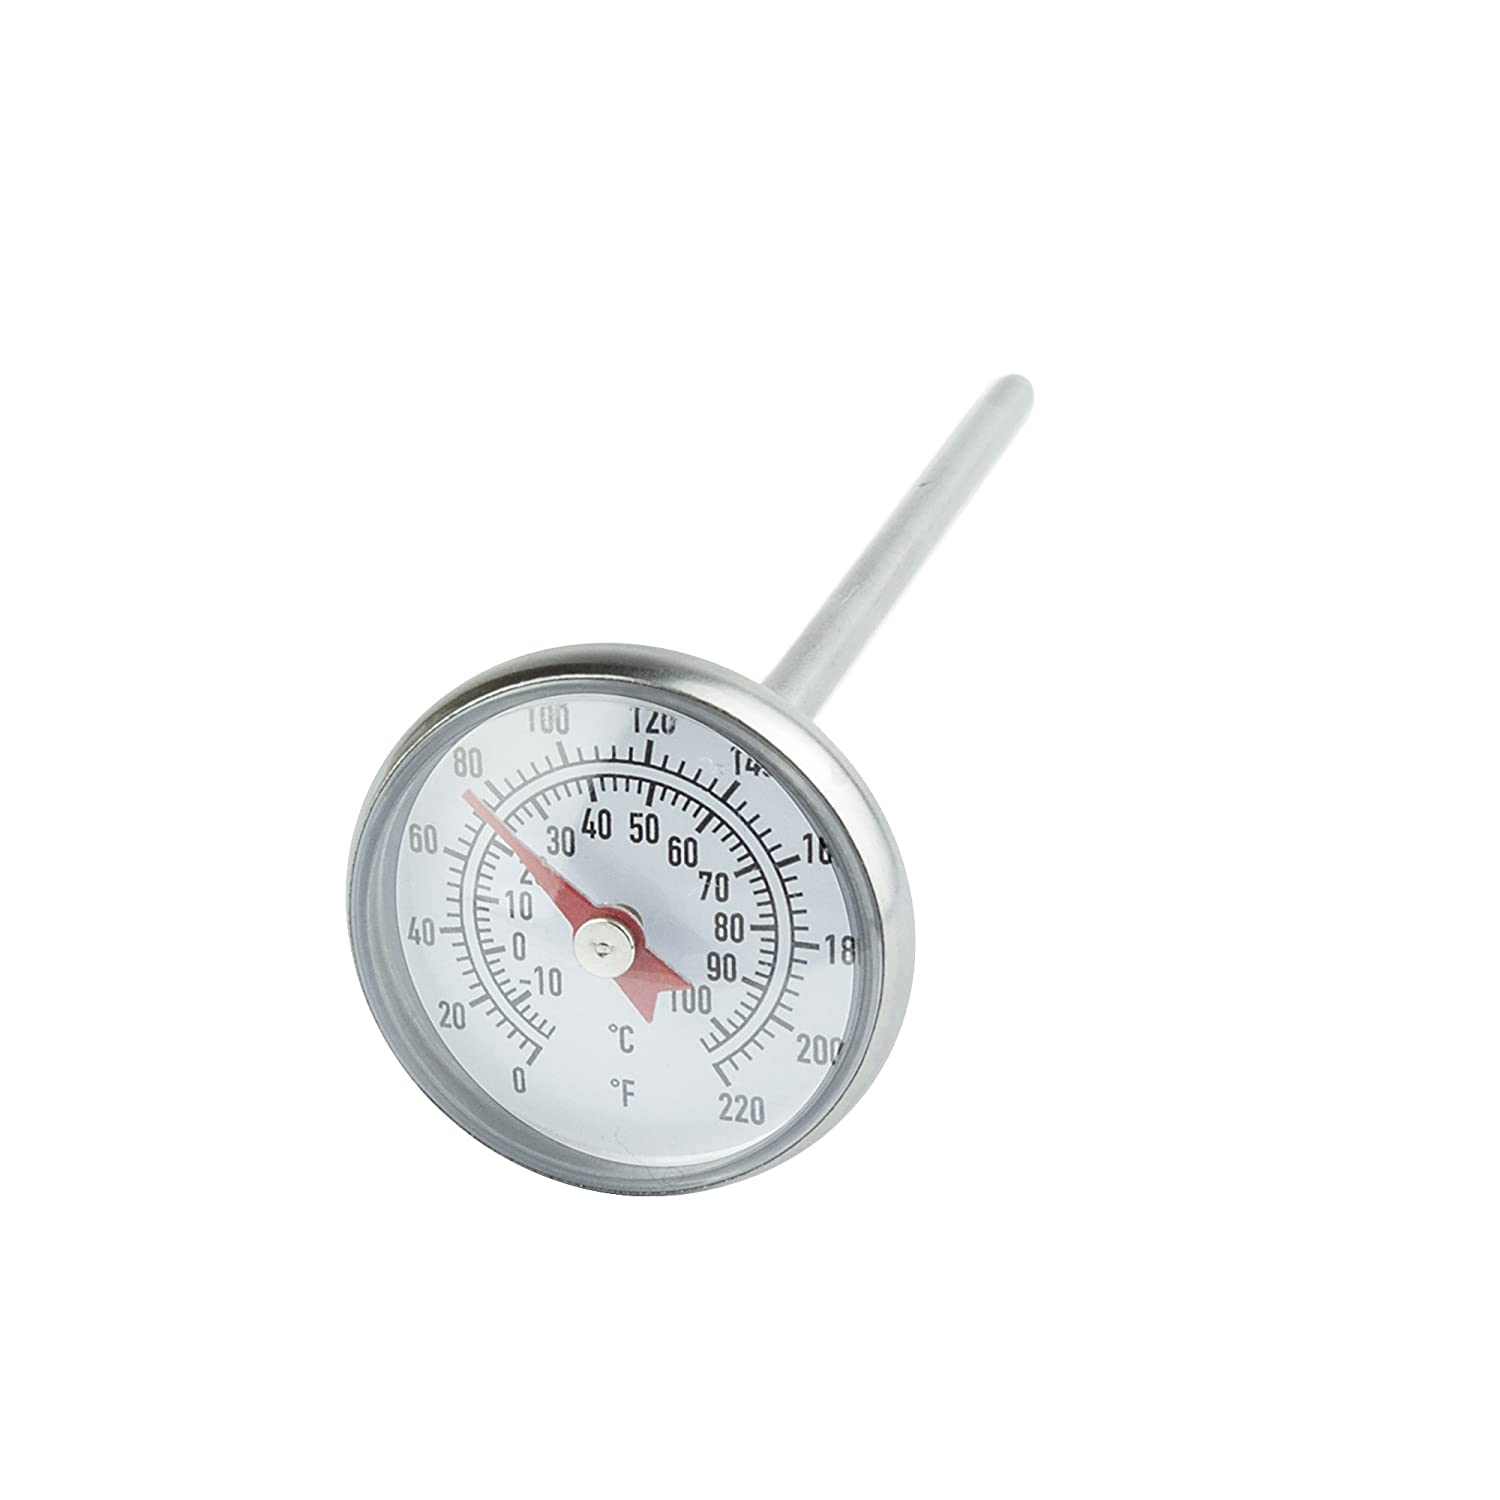 jardin du /écran 2,8/ cm Cadran facile /à lire Choix Judicieux en acier inoxydable Thermom/ètre de sol par 127/ mm Tige 100/ degr/és Celsius Gamme Compost Soil Temp/érature Thermom/ètre pour sol